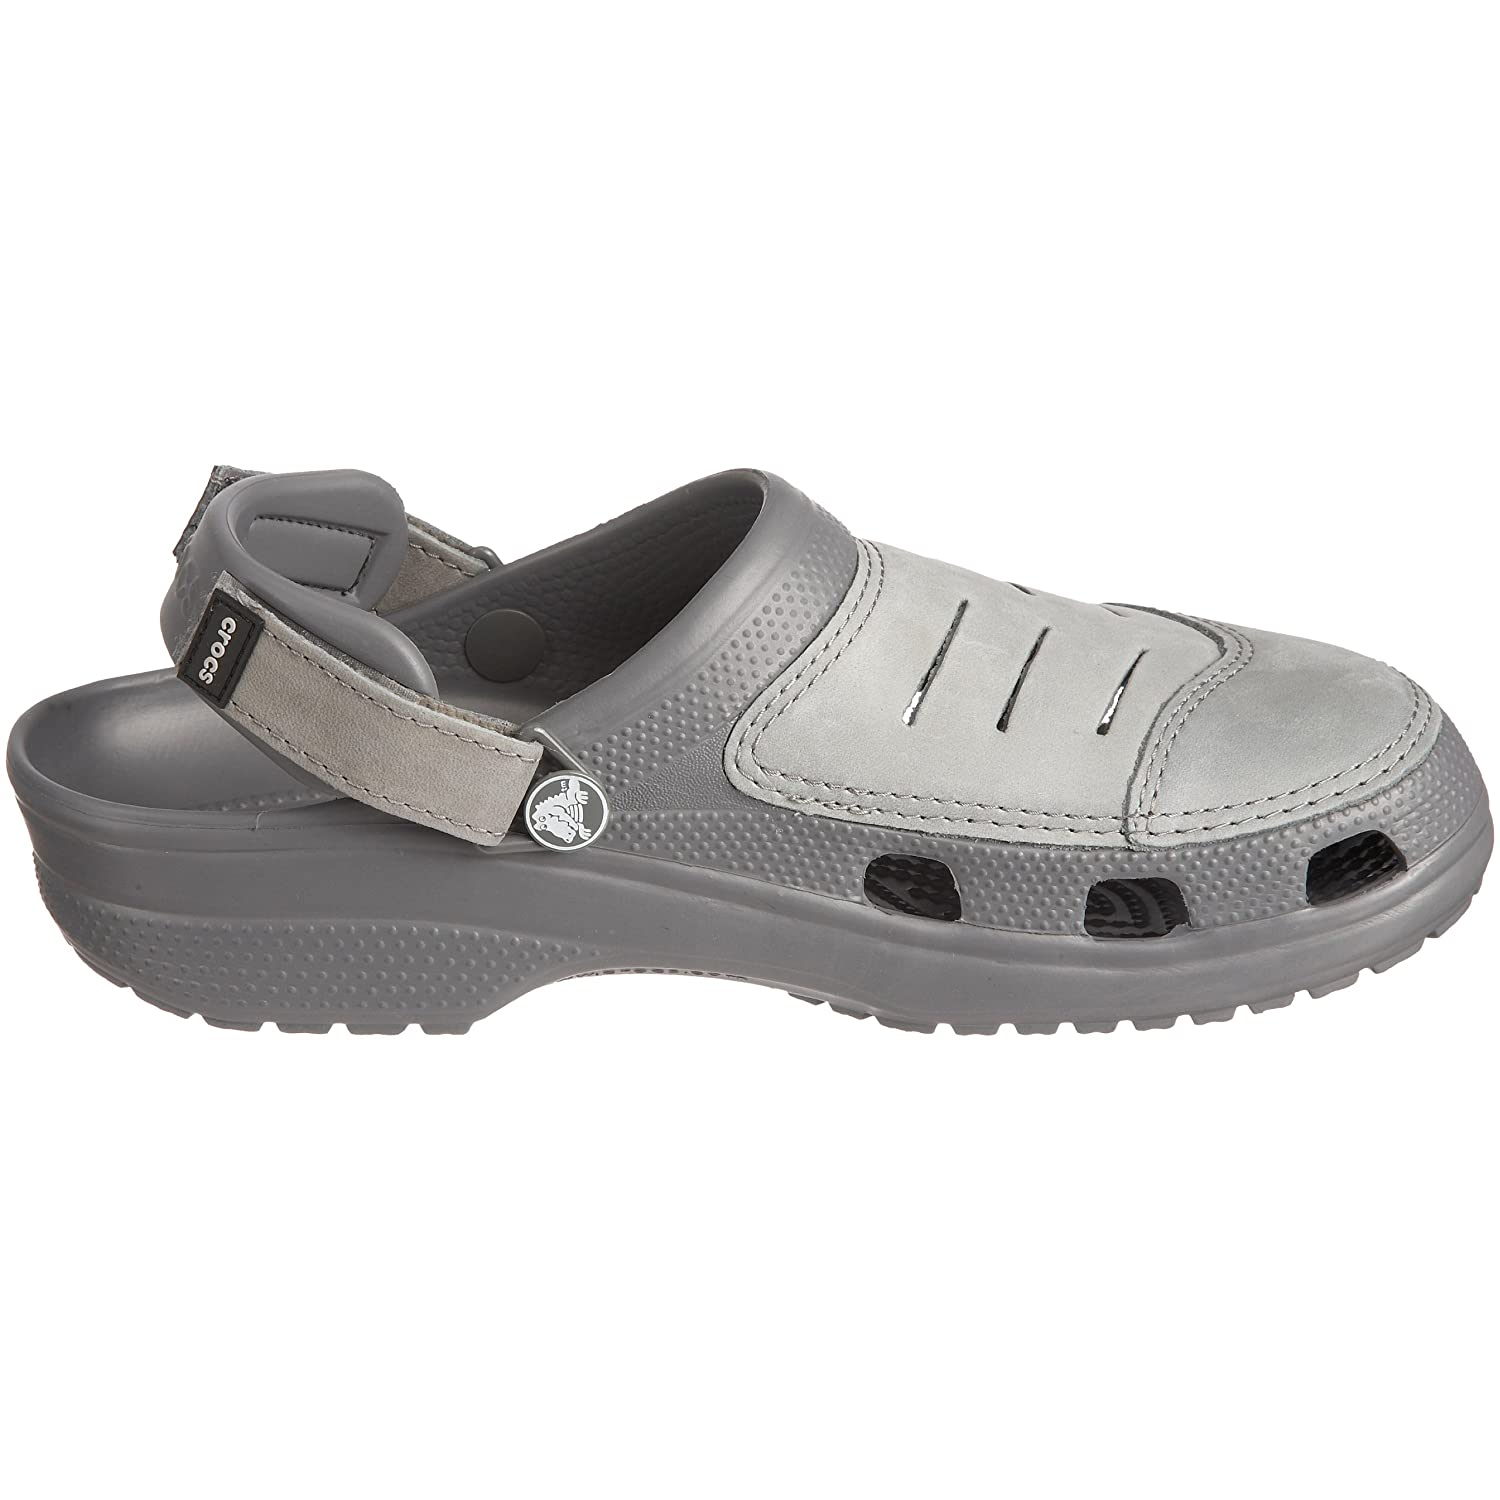 1de19b158c16 crocs Men s Yukon Charcoal and Med Grey Leather Clogs and Mules - M13  Buy  Online at Low Prices in India - Amazon.in